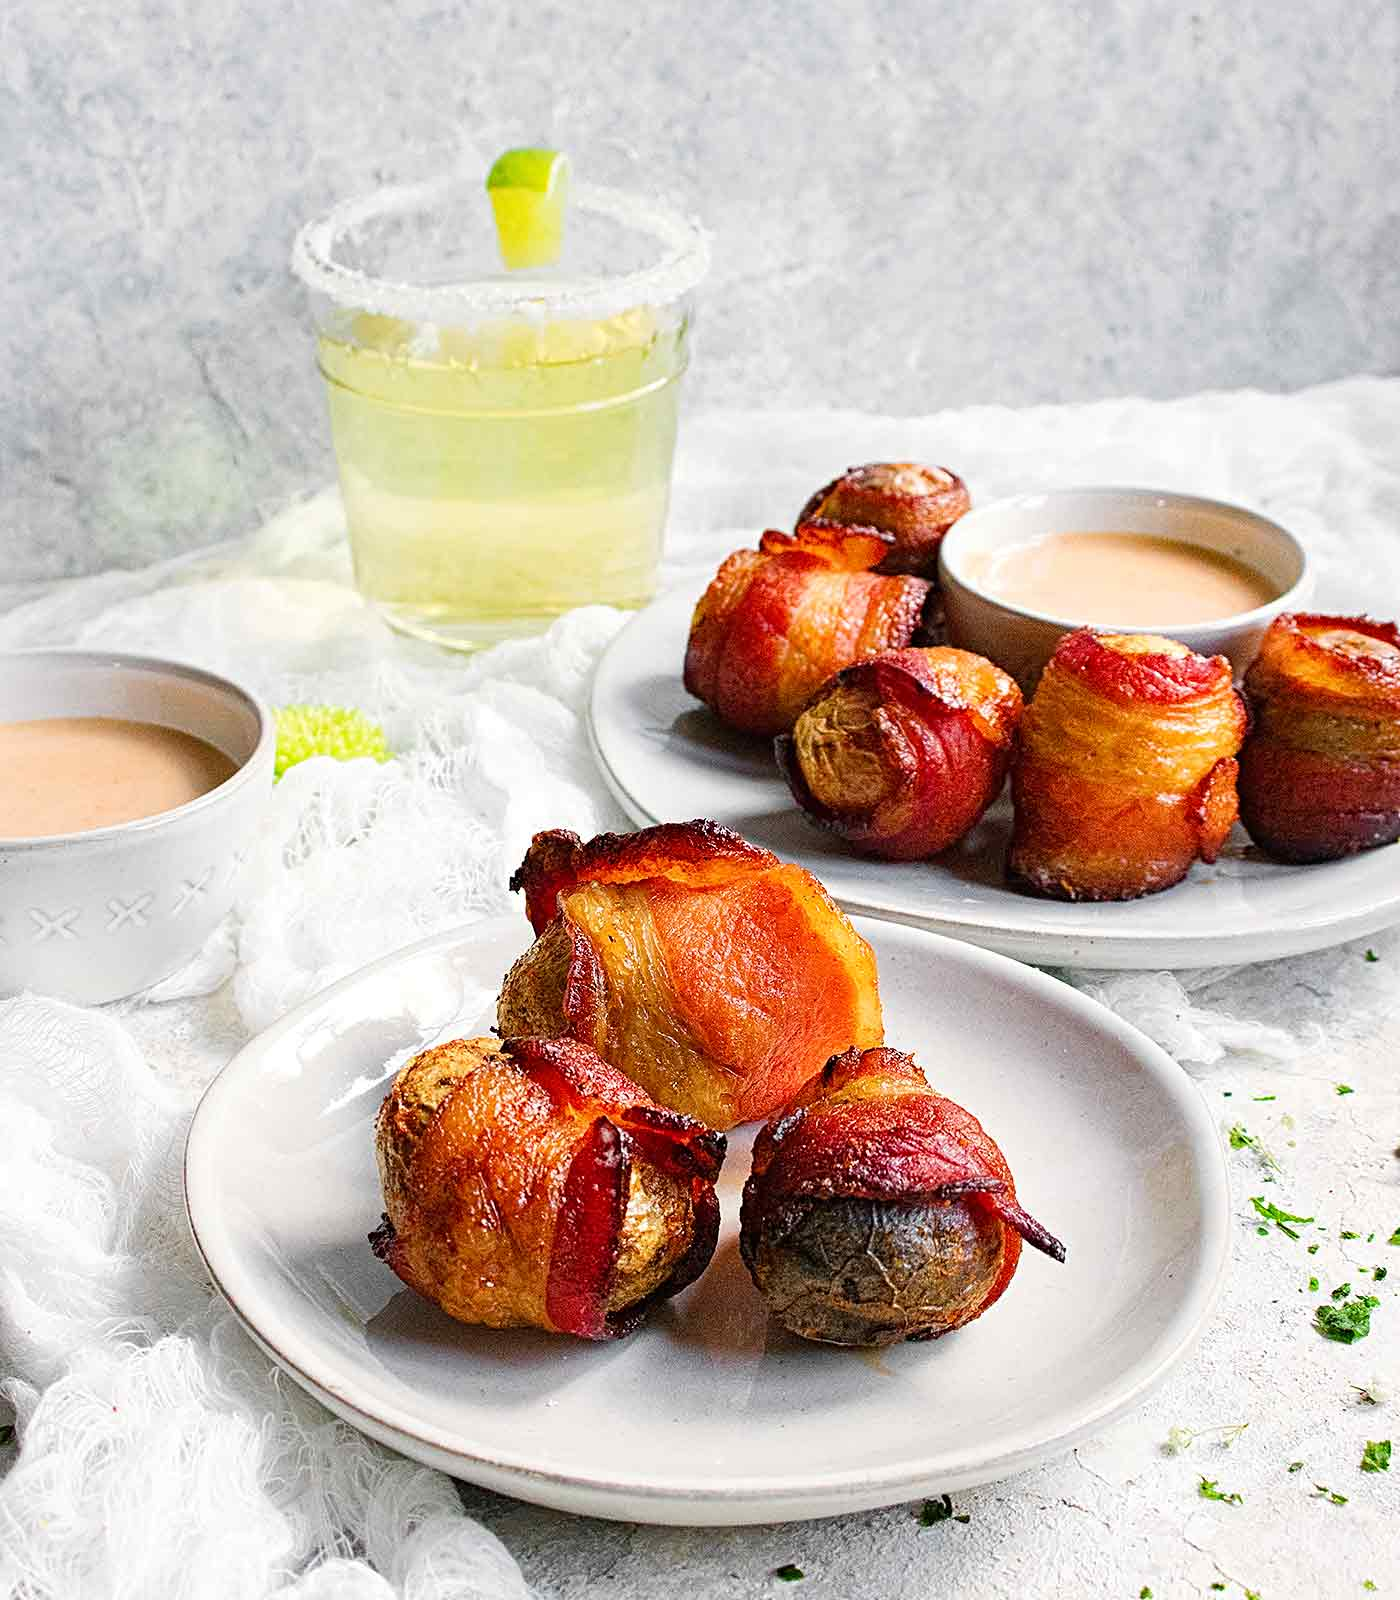 Bacon wrapped potatoes served on individual plates with dipping sauce on the side